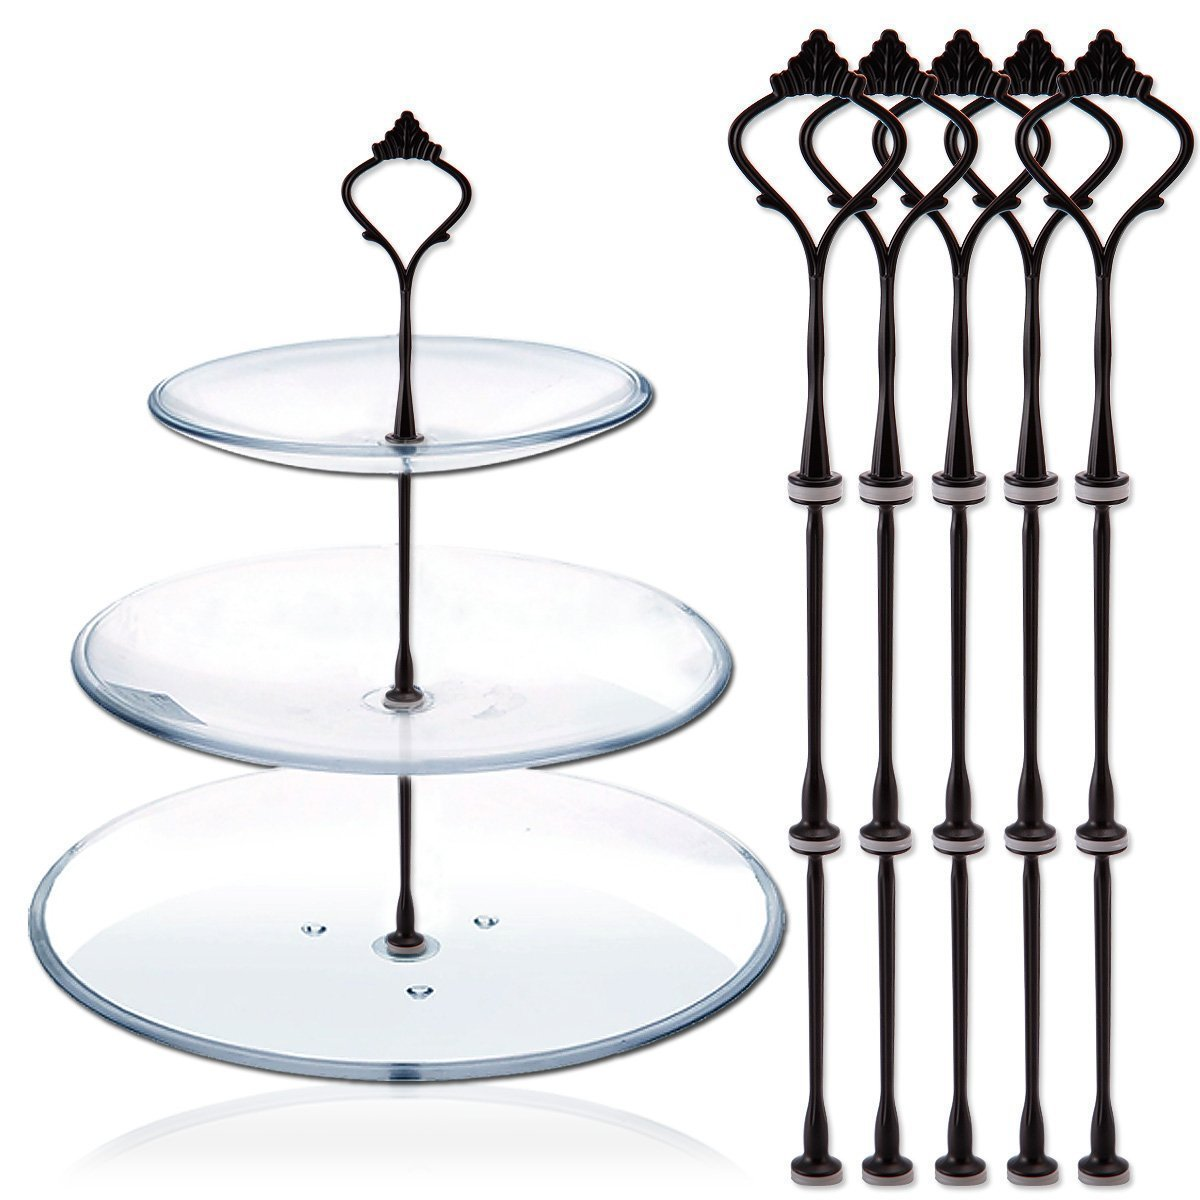 Plates Not Include Happy Will 5 Sets 3 Tier Crown Cake Stand Fruit Cake Plate Handle Fitting Hardware Rod Stand Holder with Stylus Black